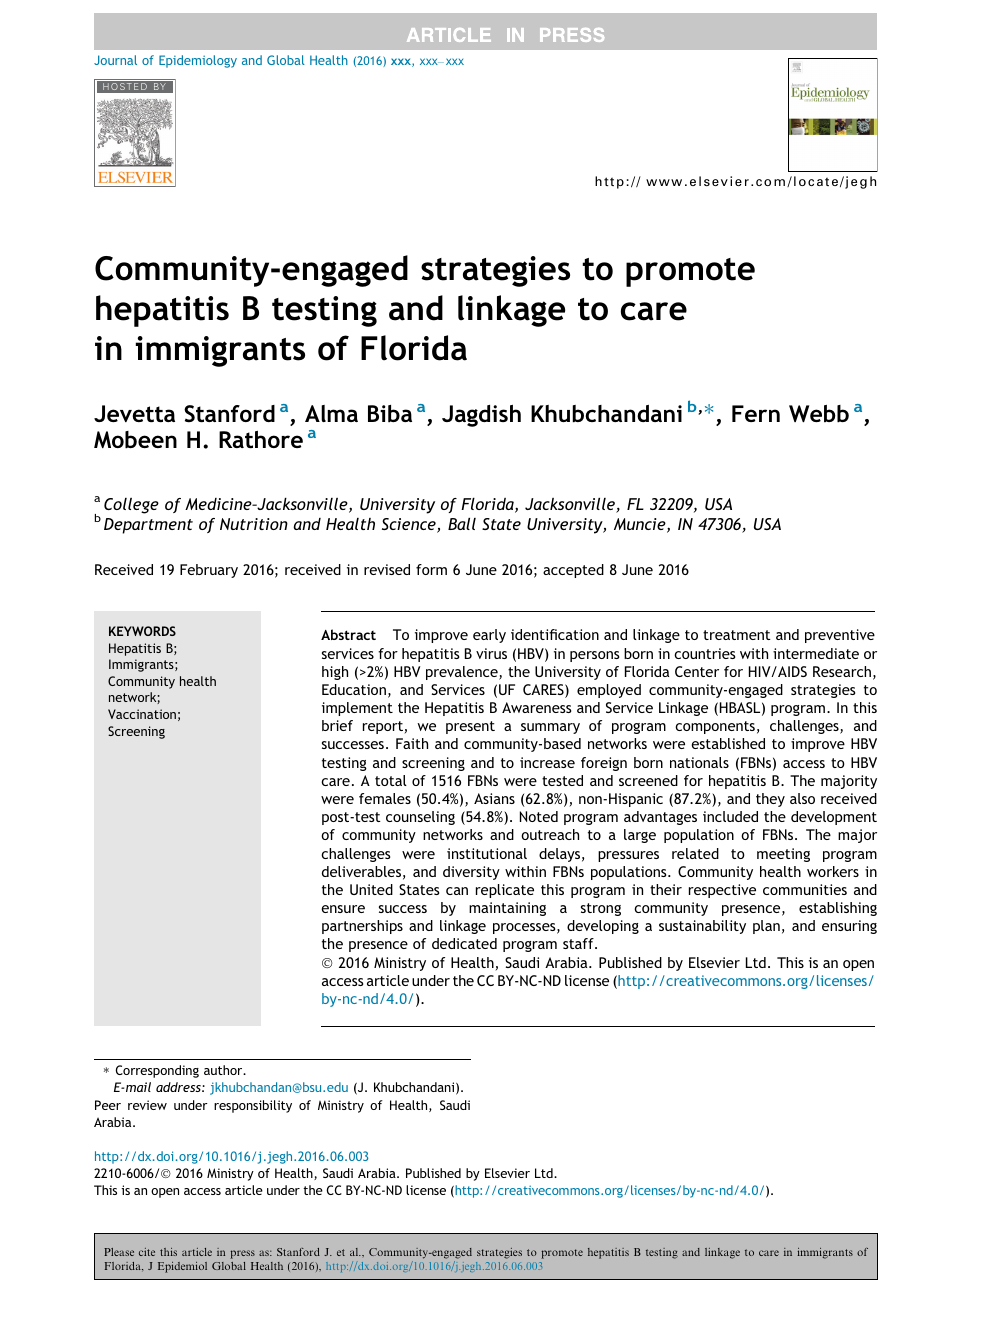 Community-engaged strategies to promote hepatitis B testing and